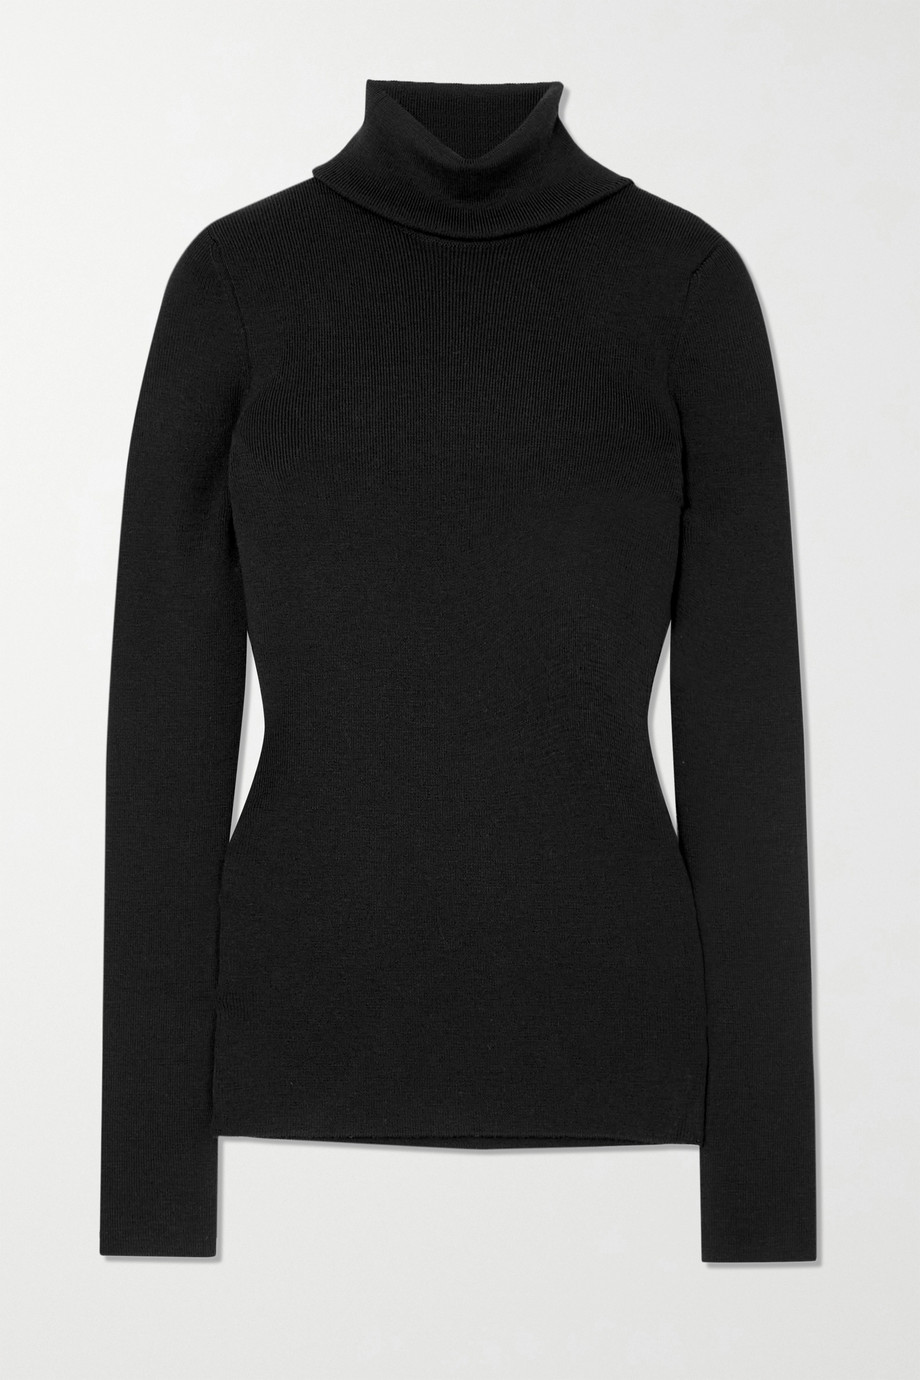 Gucci Embroidered wool-blend turtleneck sweater